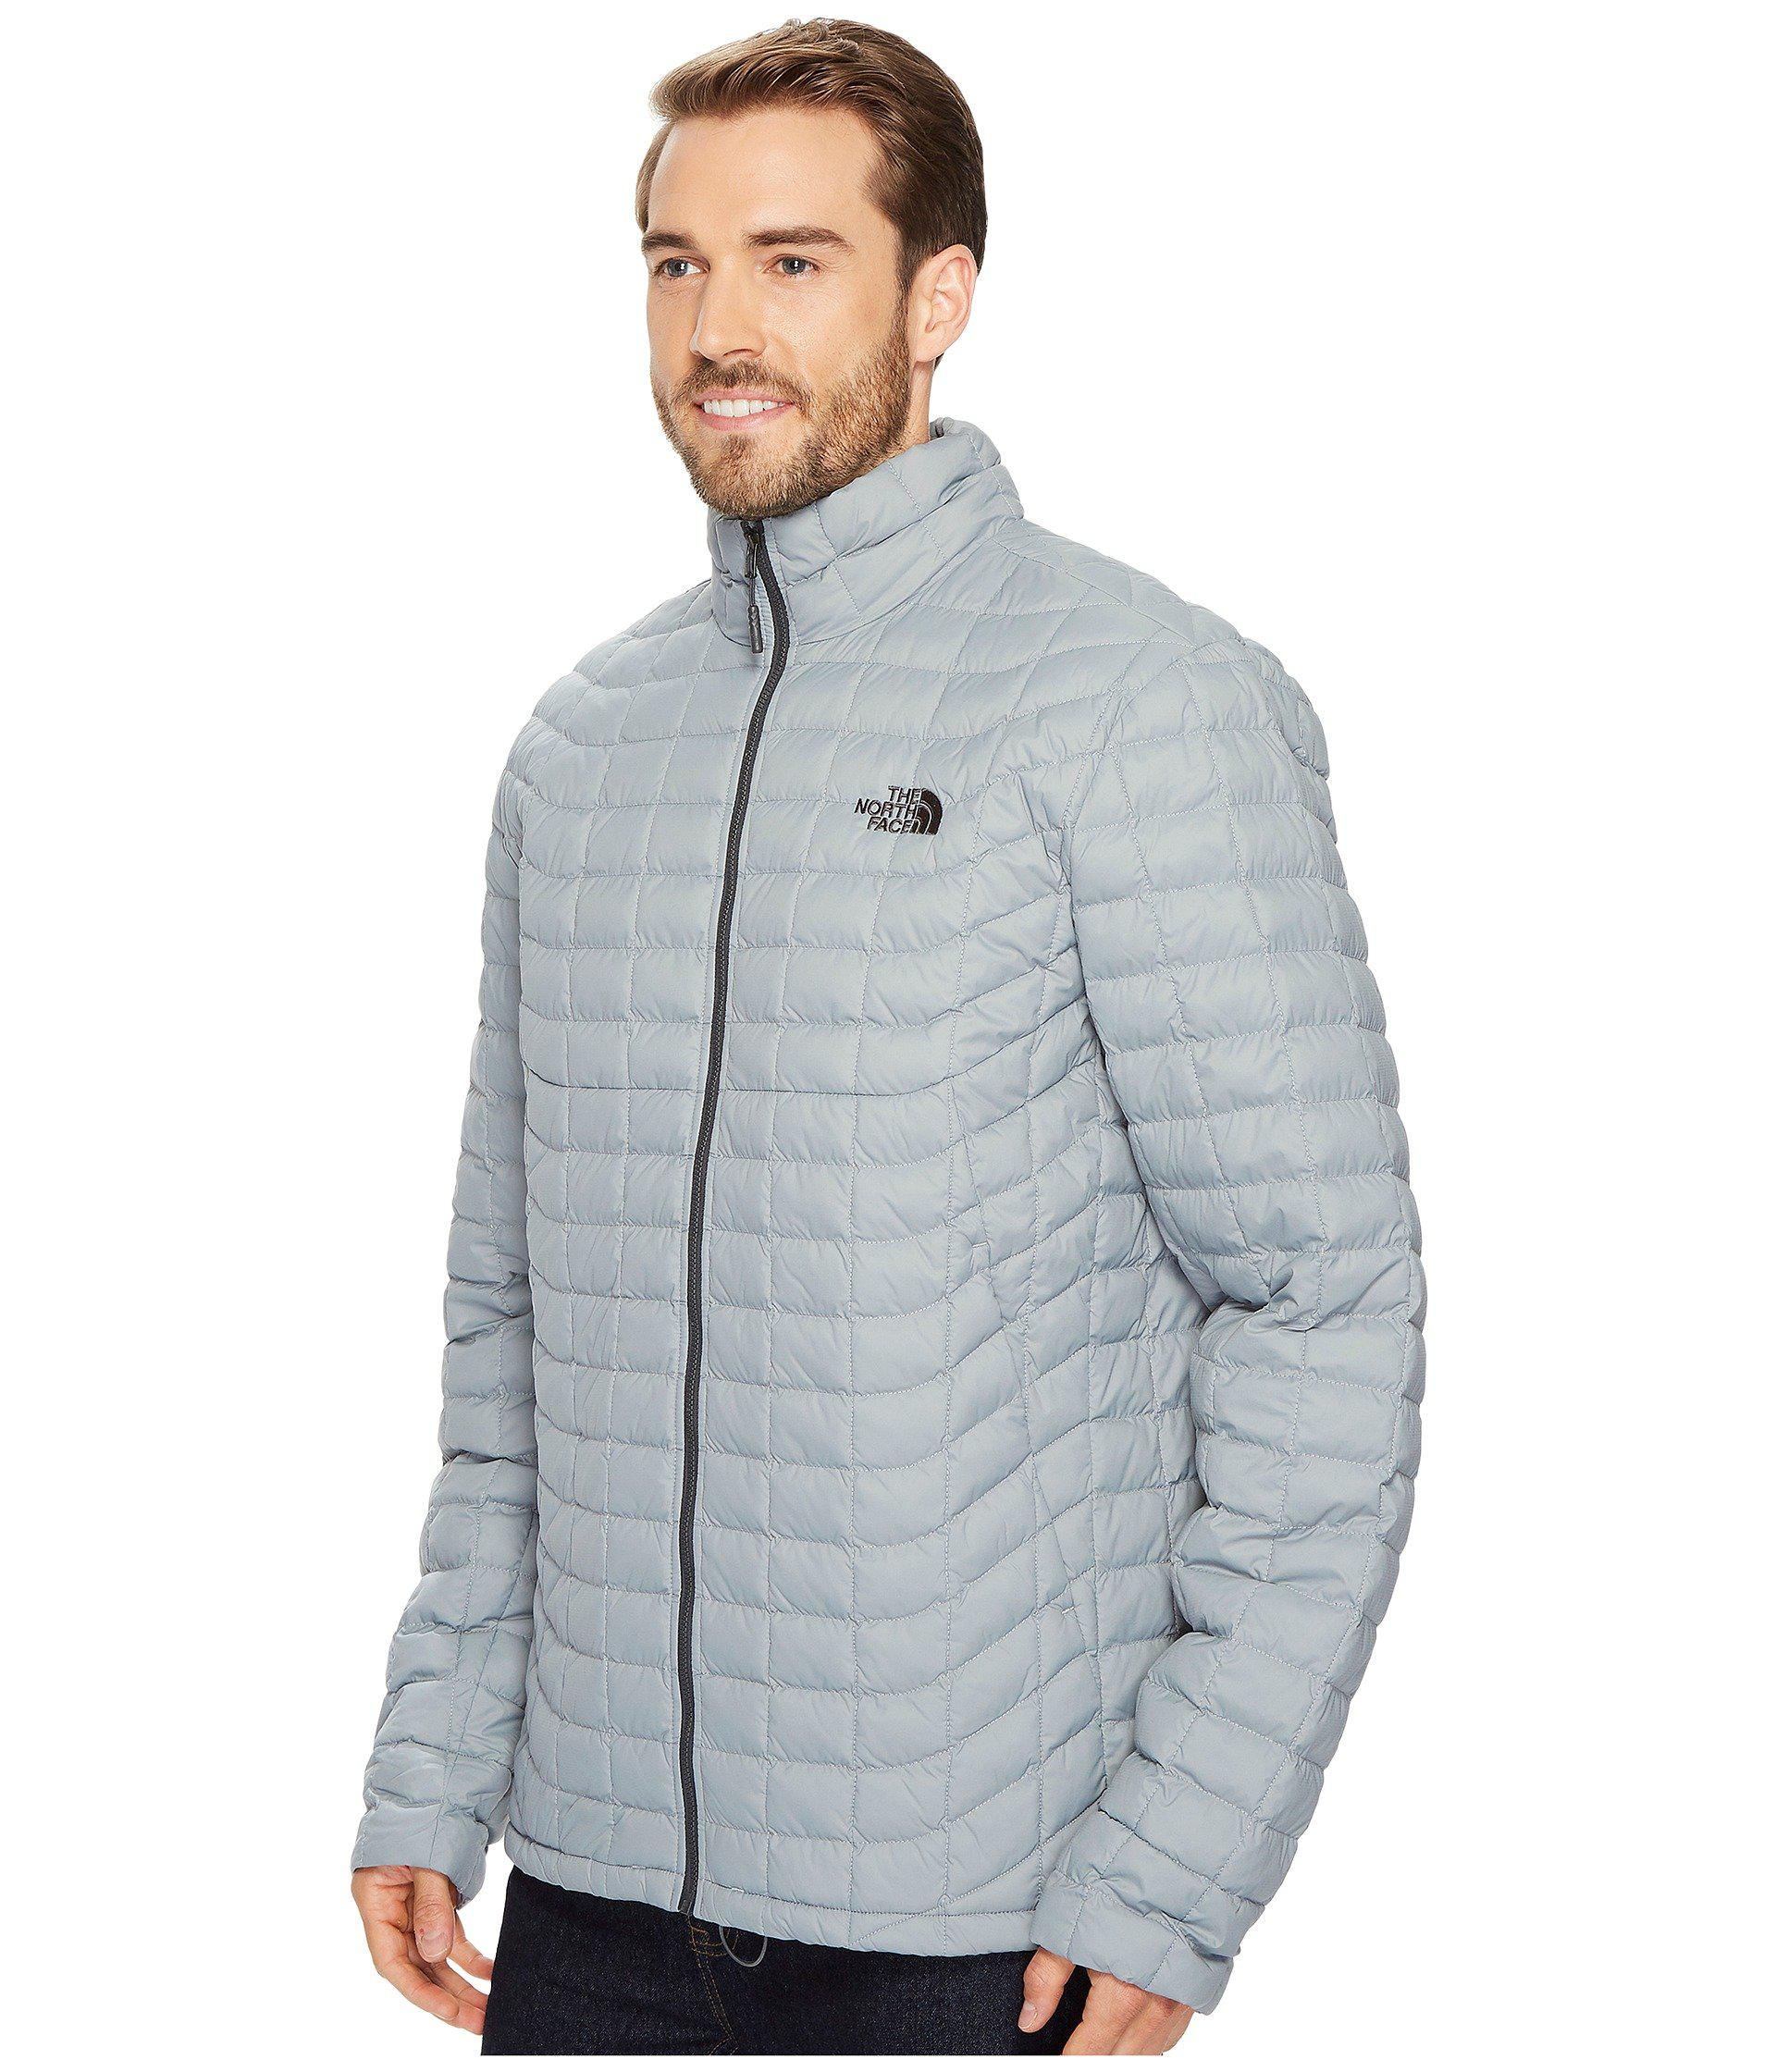 4c93181f83 Lyst - The North Face Thermoball Jacket - Tall in Gray for Men - Save 28%